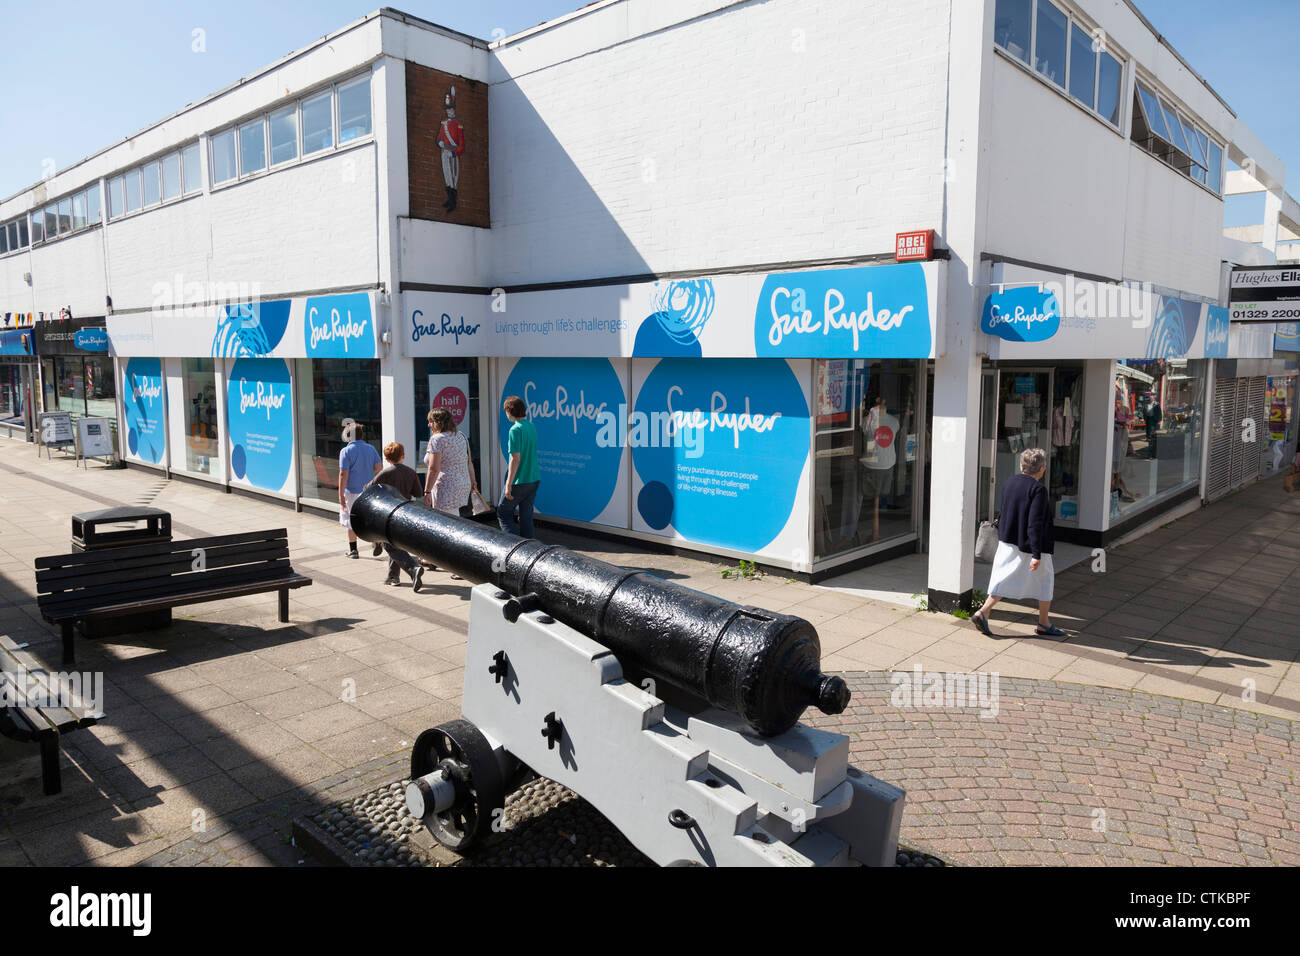 Sue Ryder charity shop in town centre arcade with canon in foreground - Stock Image